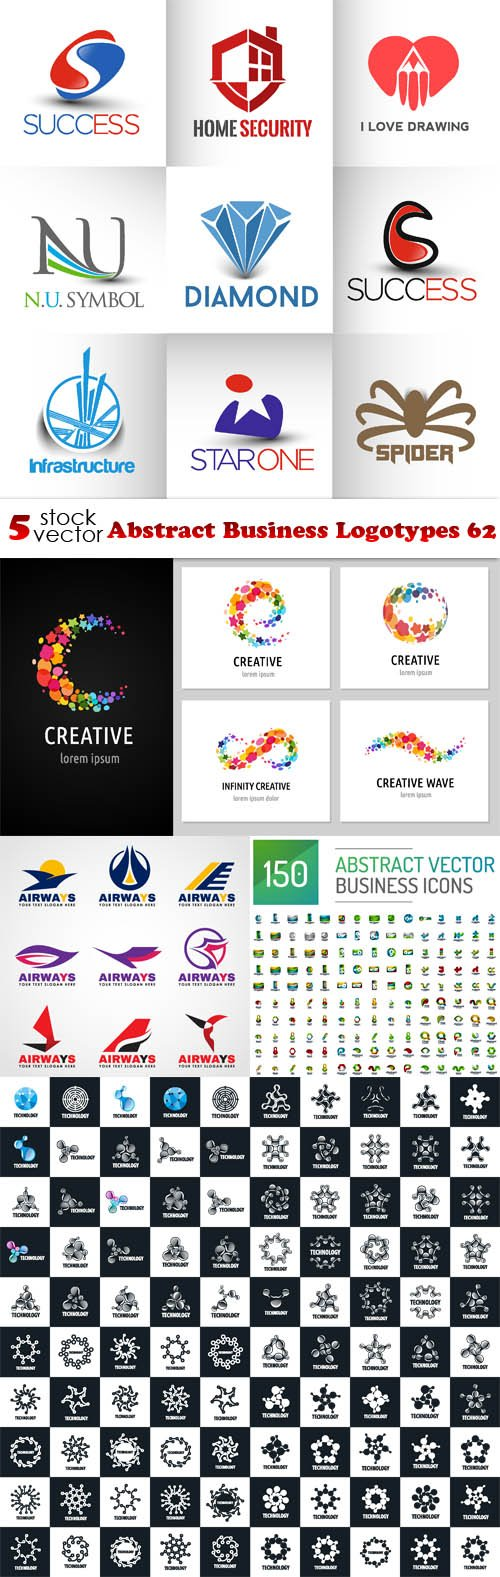 Vectors - Abstract Business Logotypes 62